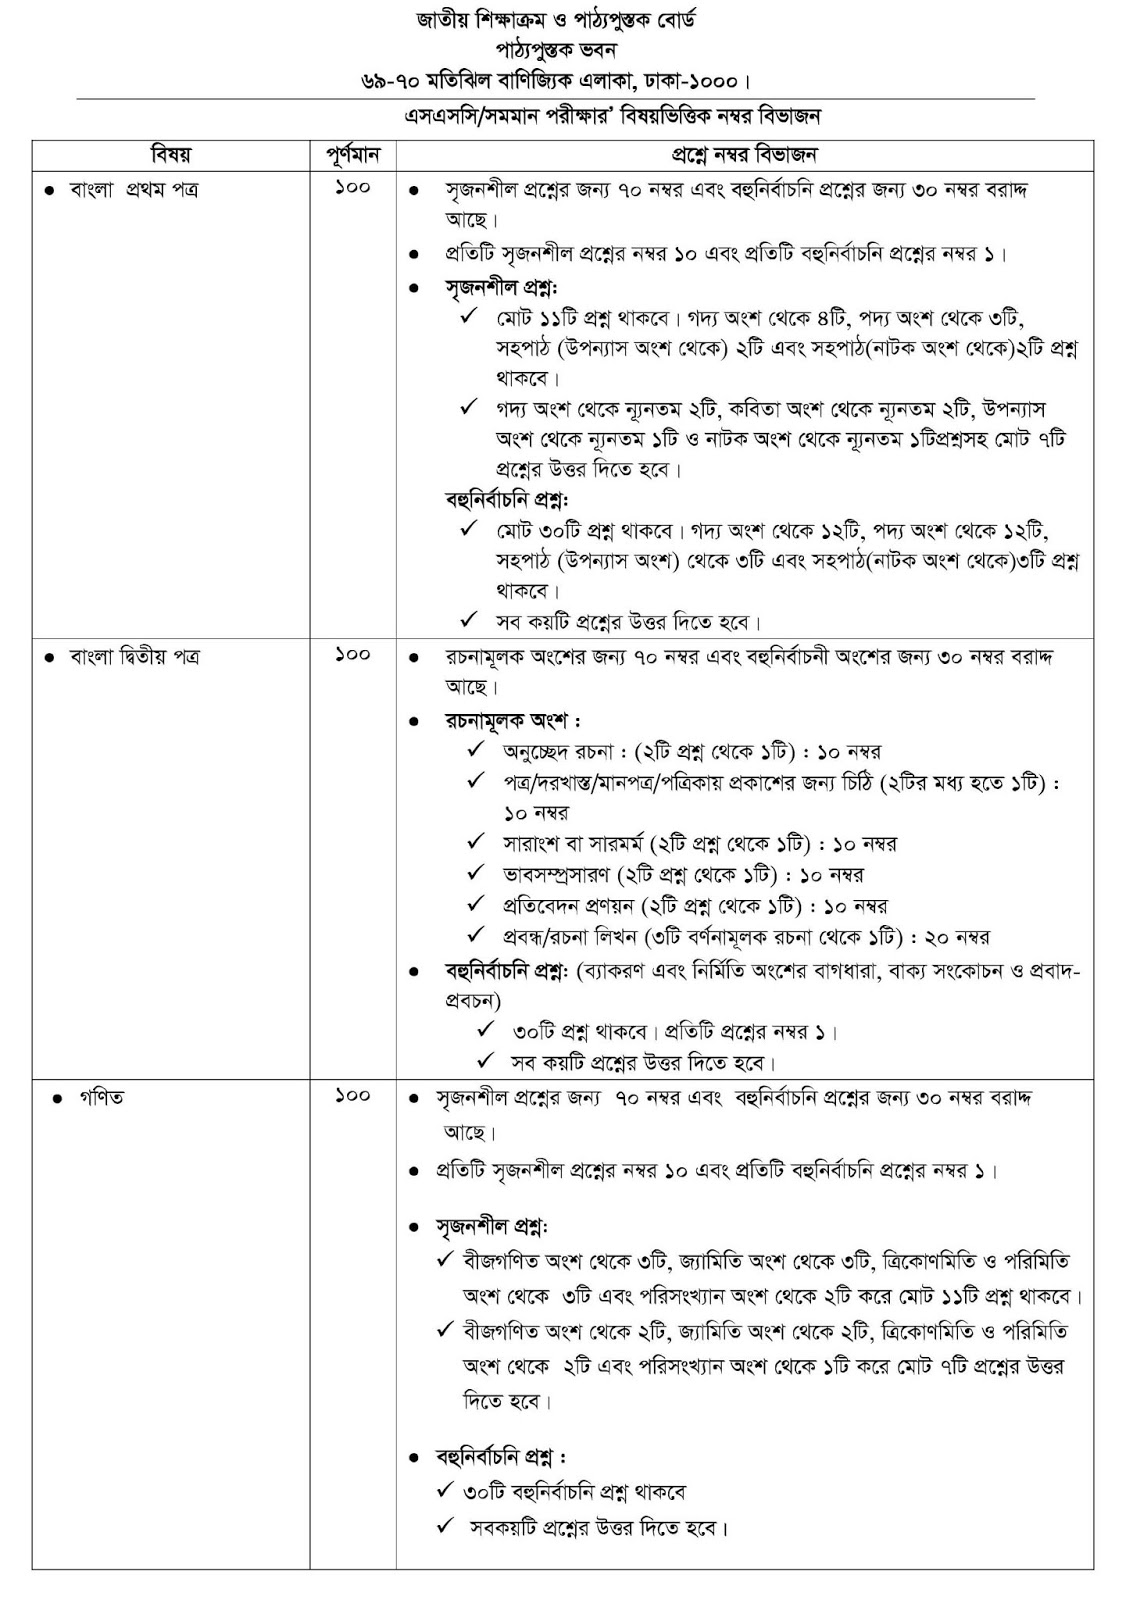 SSC Syllabus 2020 with Question Pattern